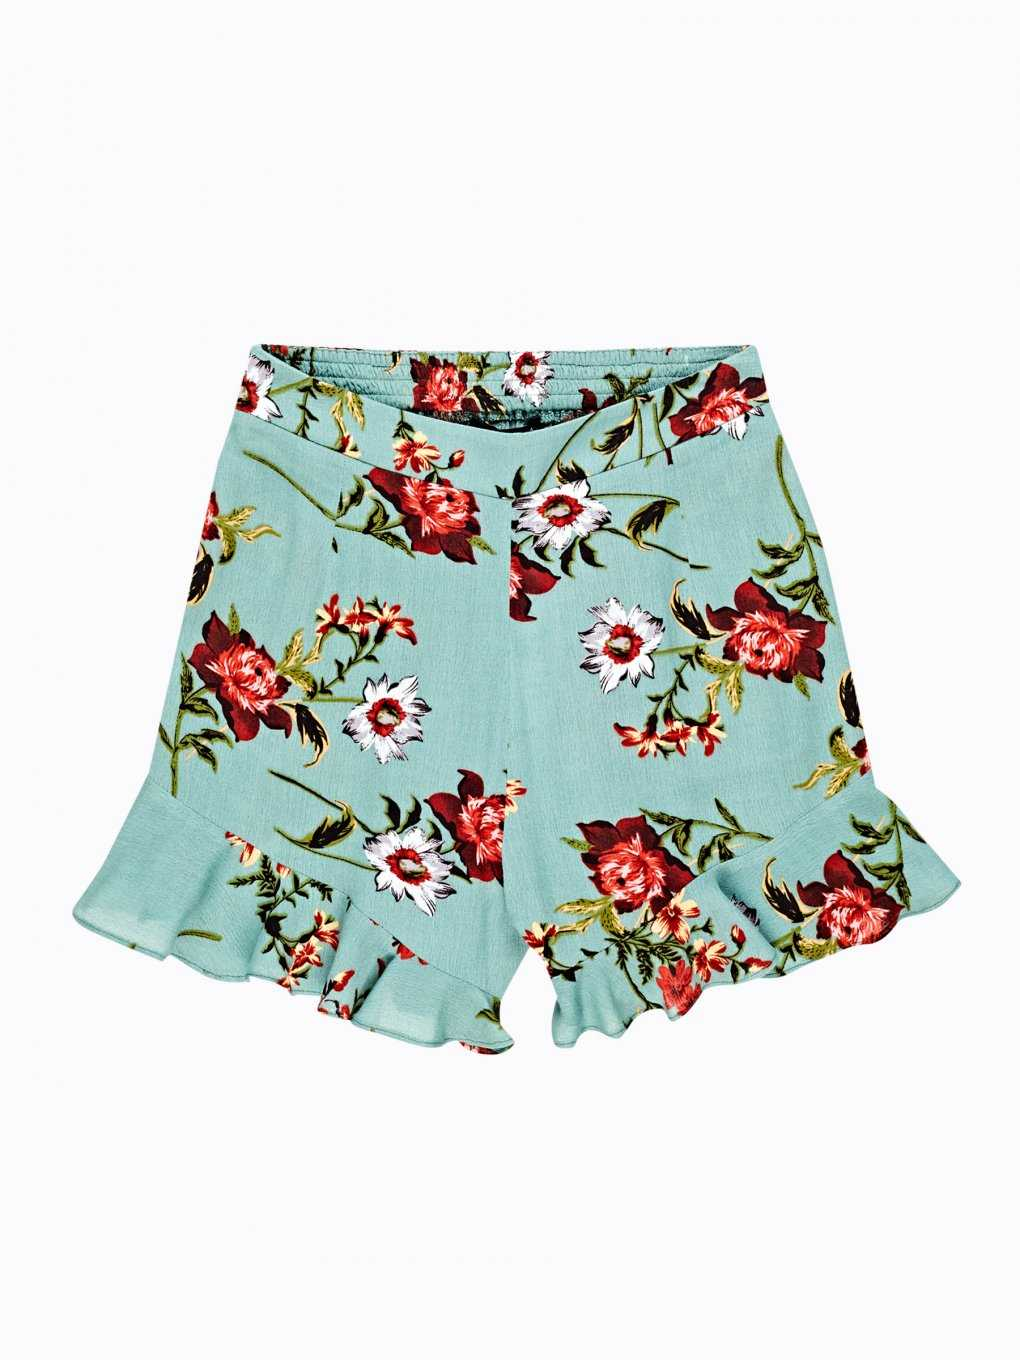 Floral print shorts with ruffle